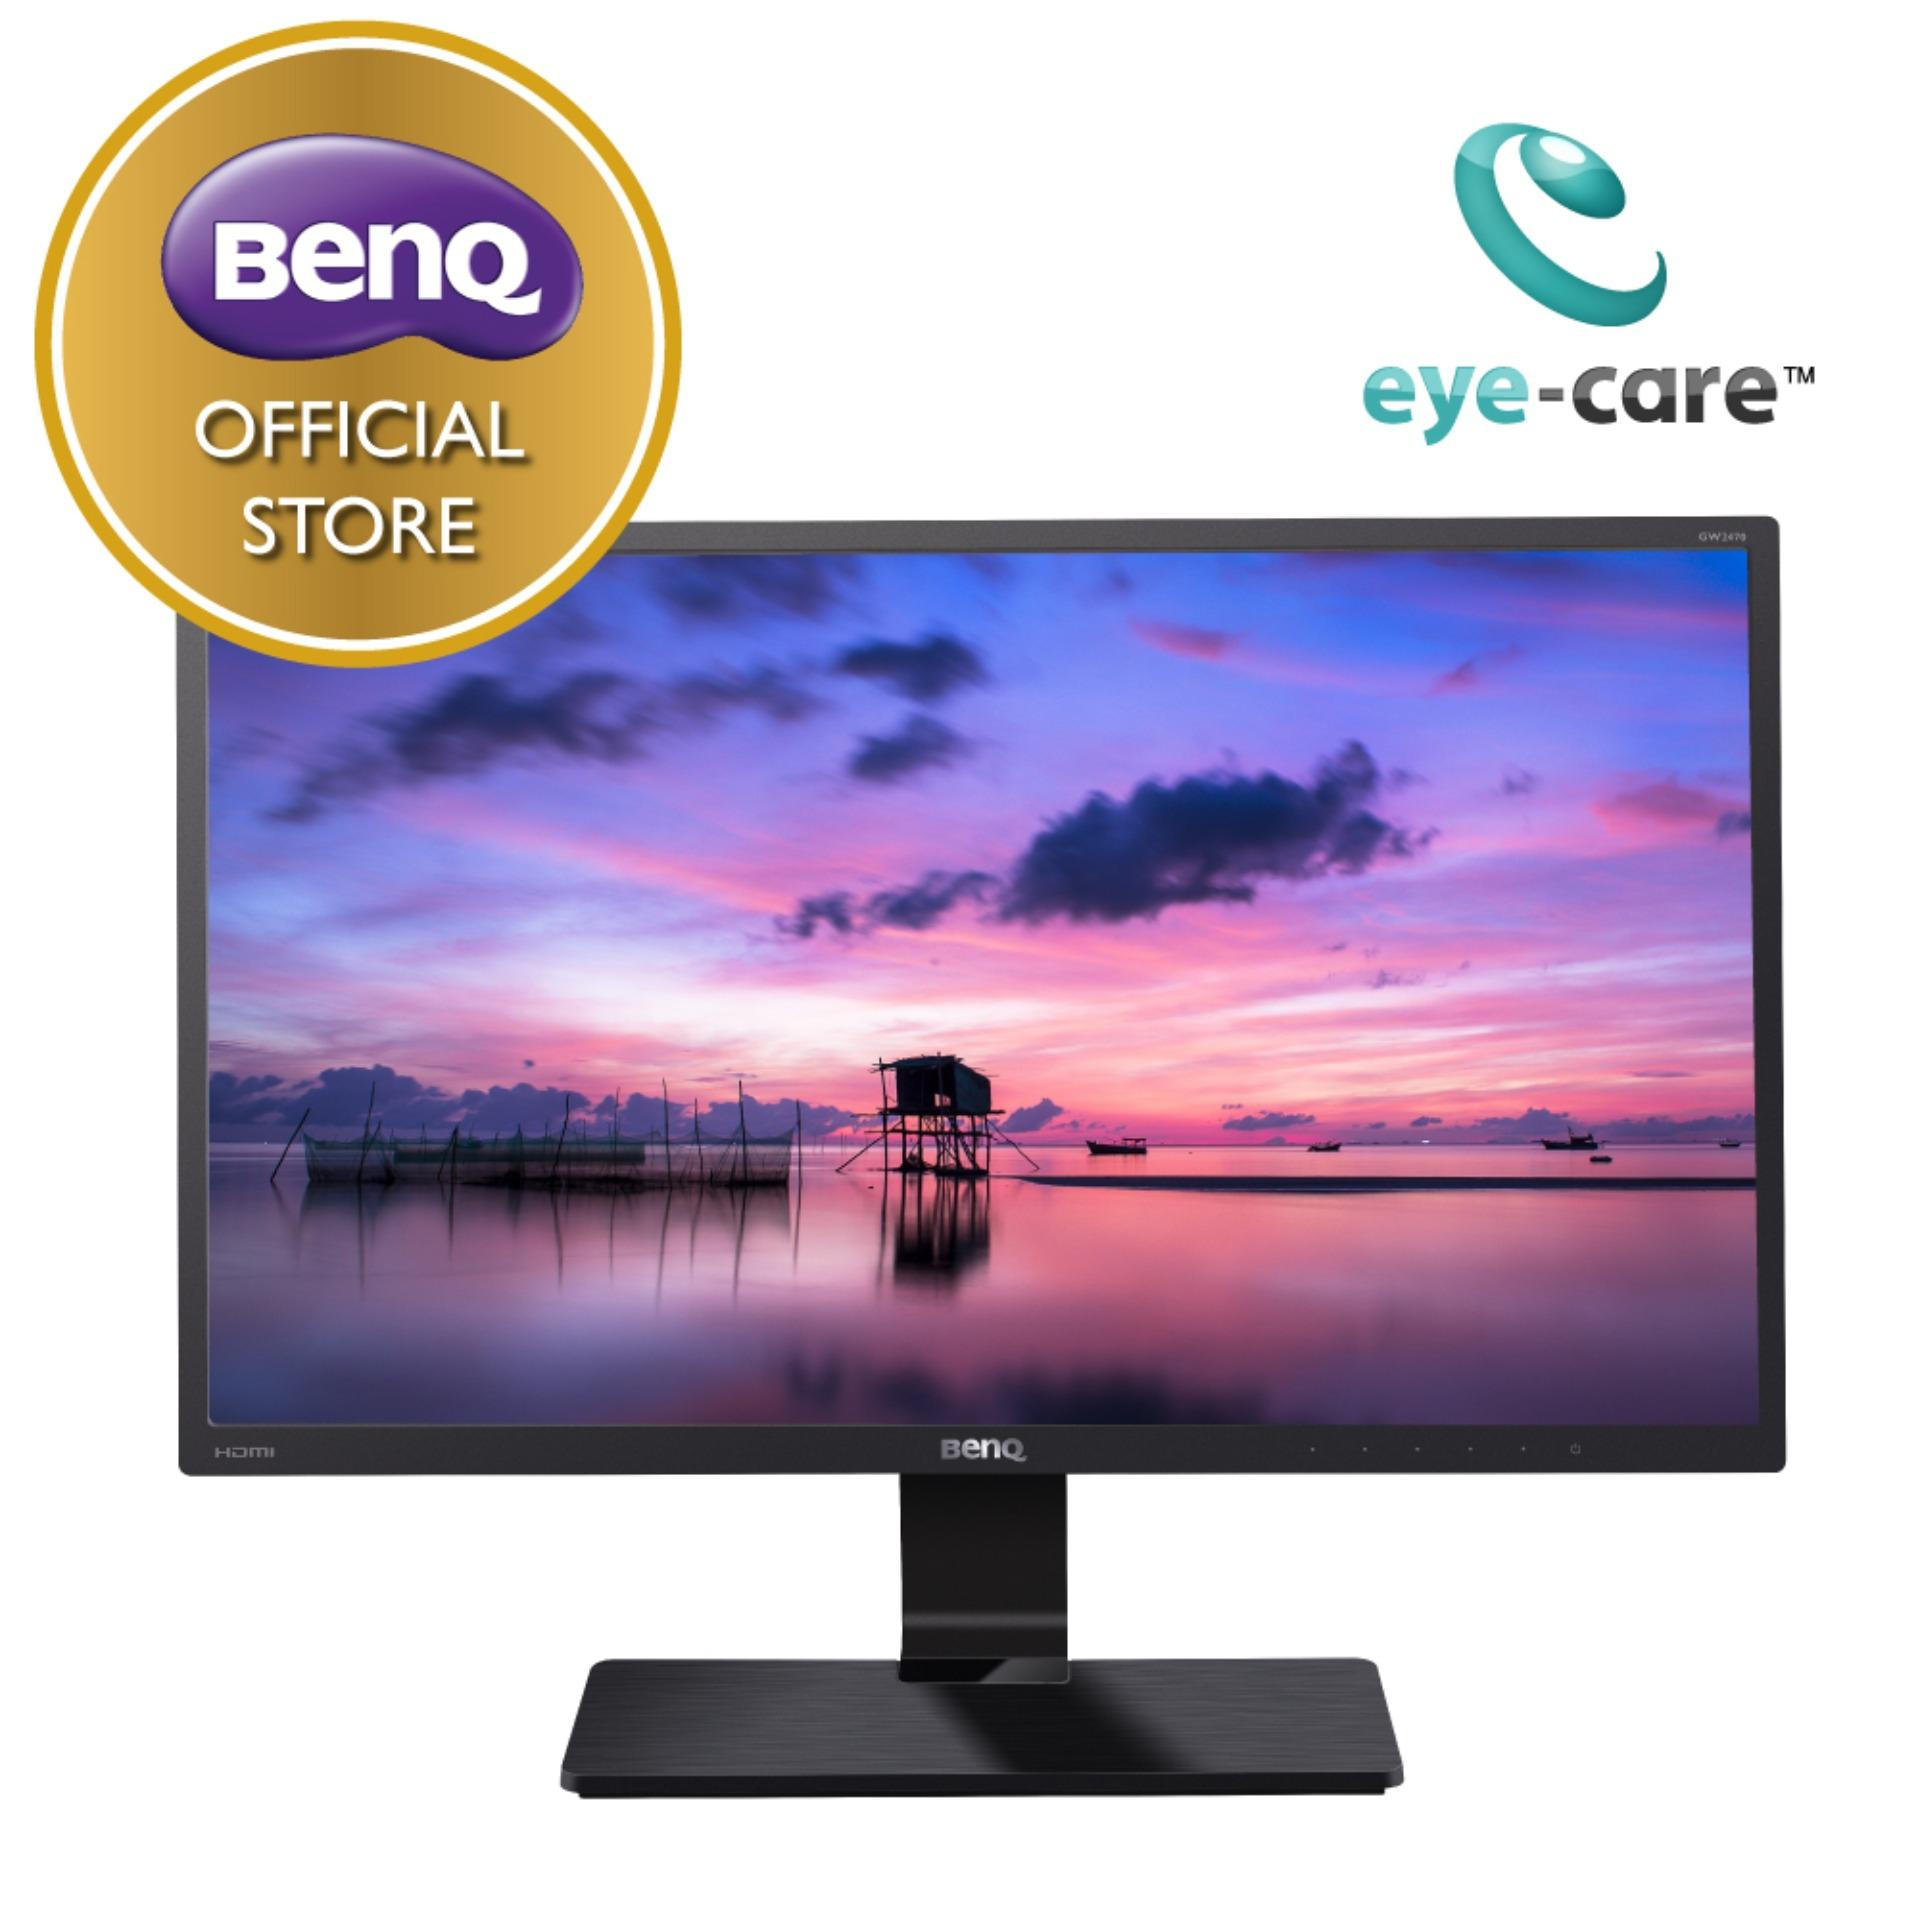 Harga Benq Gw2470H 24 Inch Full Hd Hdmi Va Led Eye Care Monitor Fullset Murah